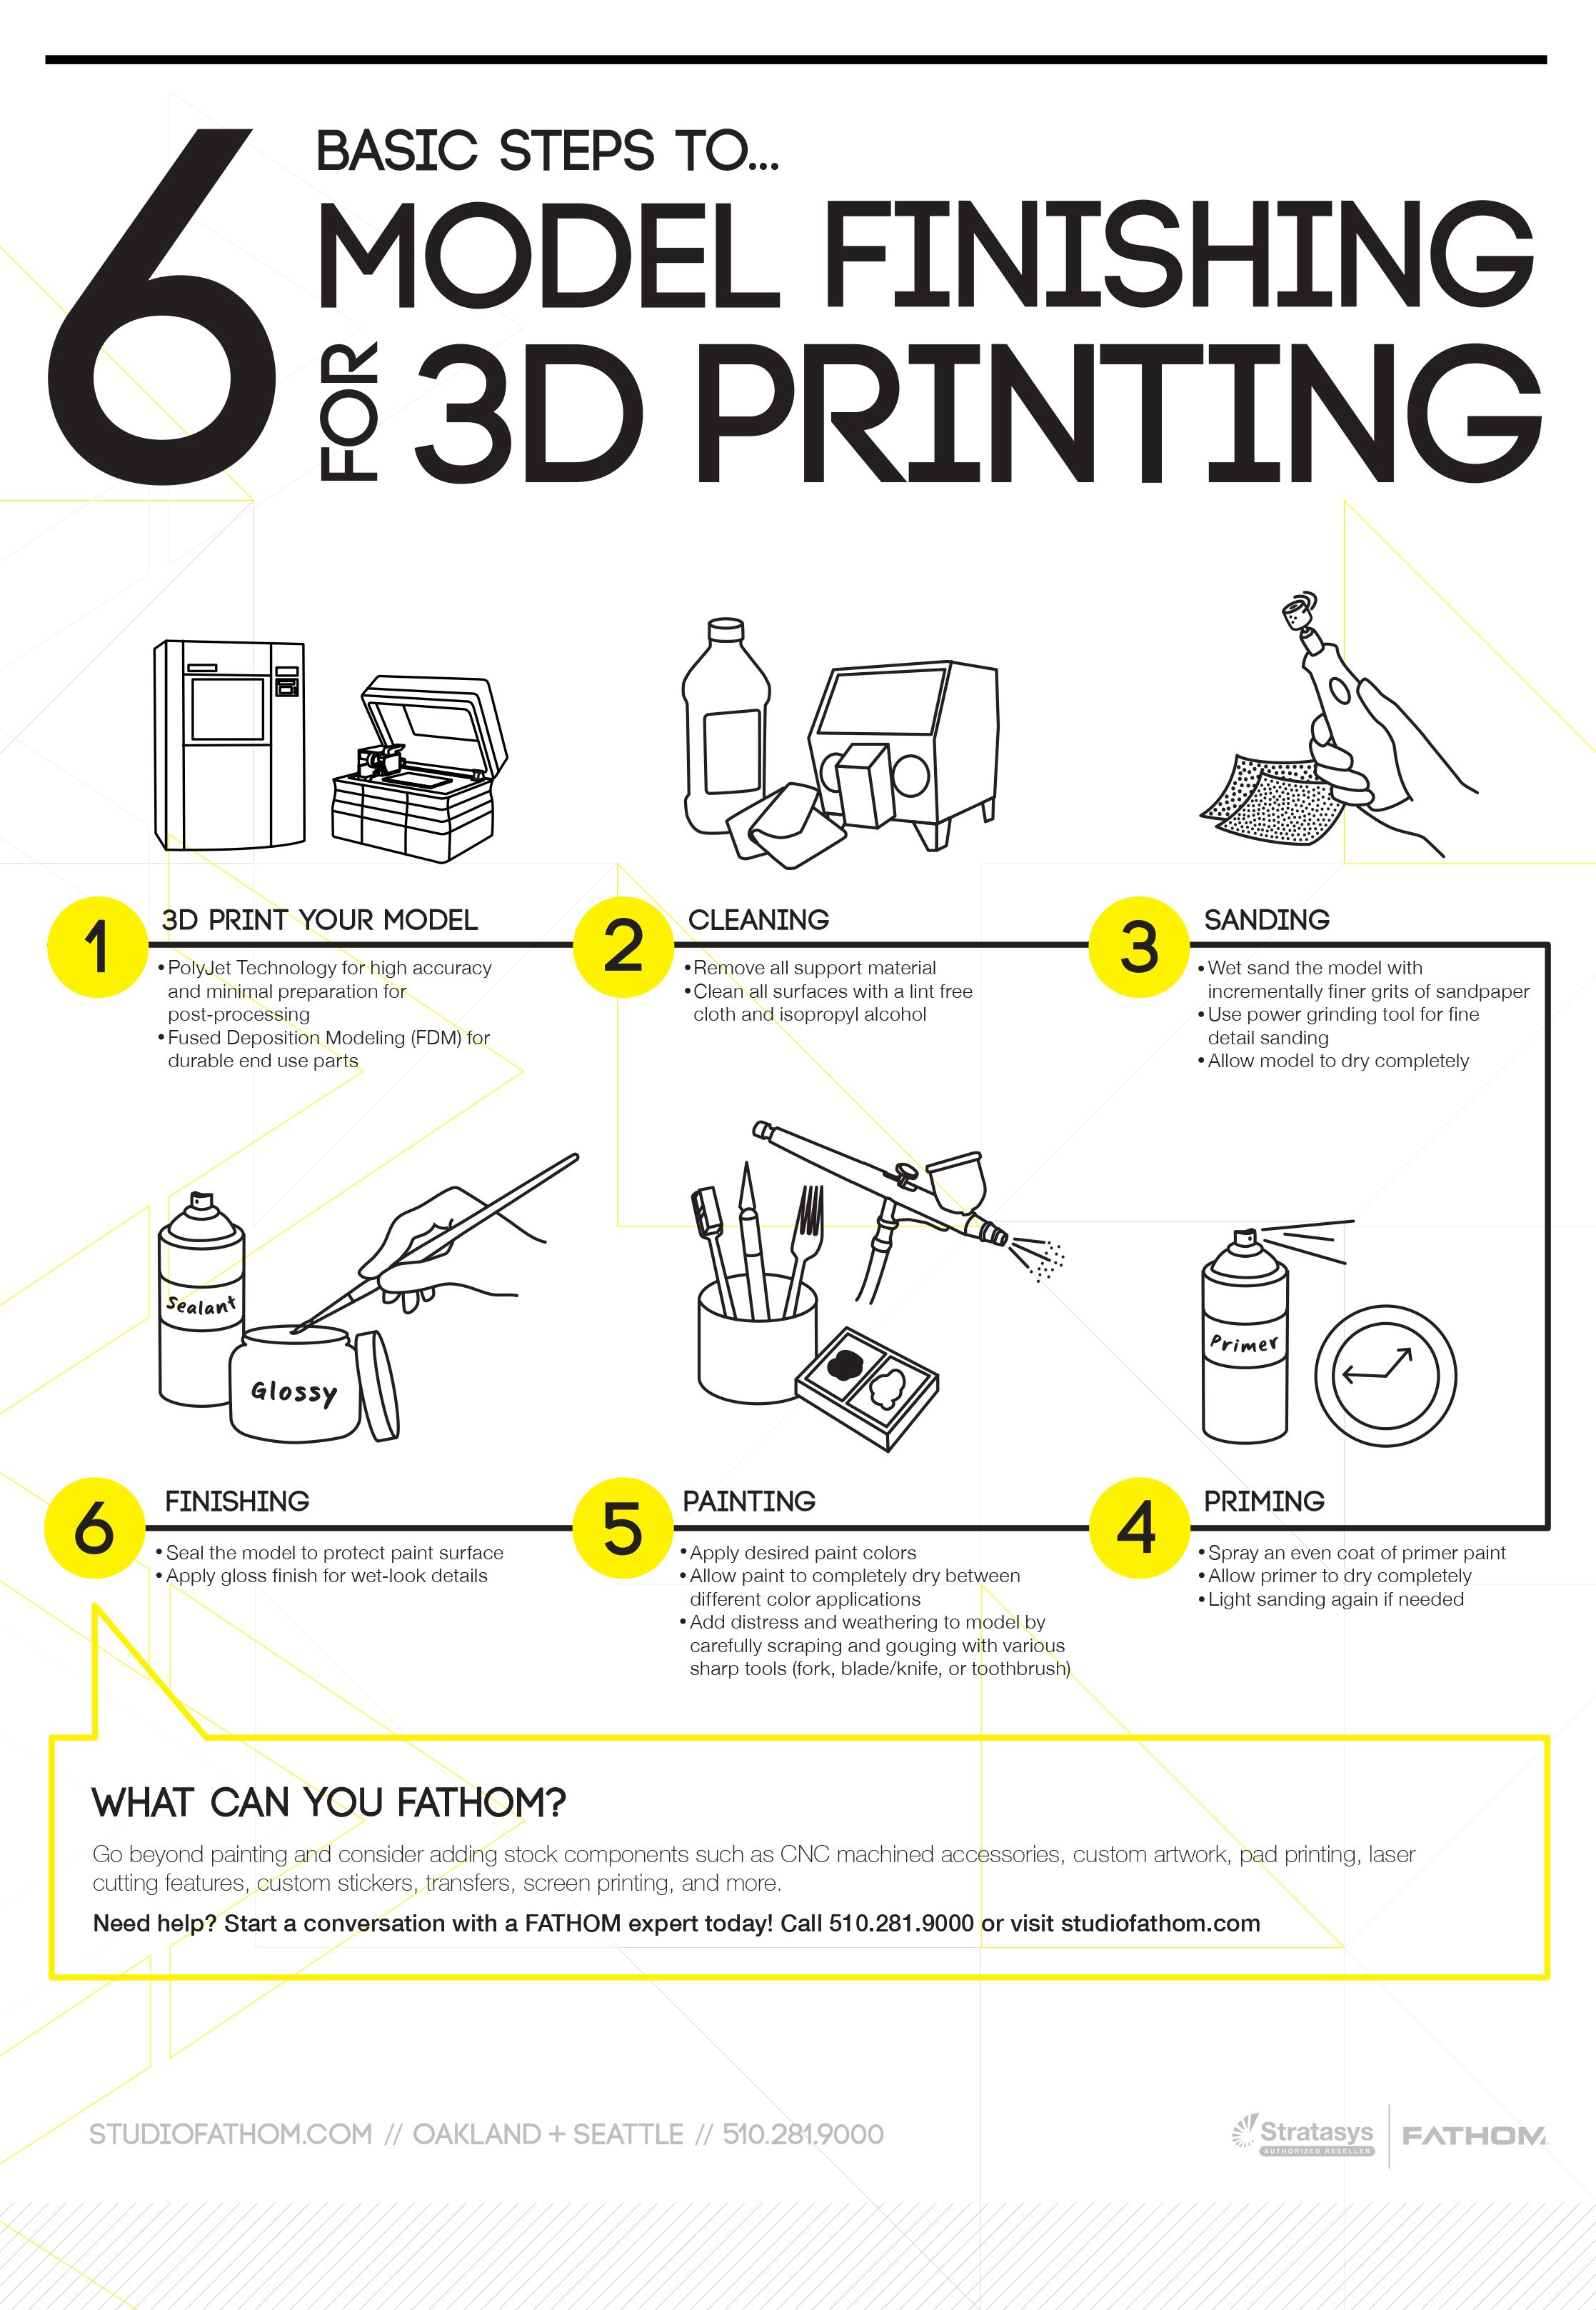 6 basic steps to model finishing for 3d printing by the fathom team oakland seattle